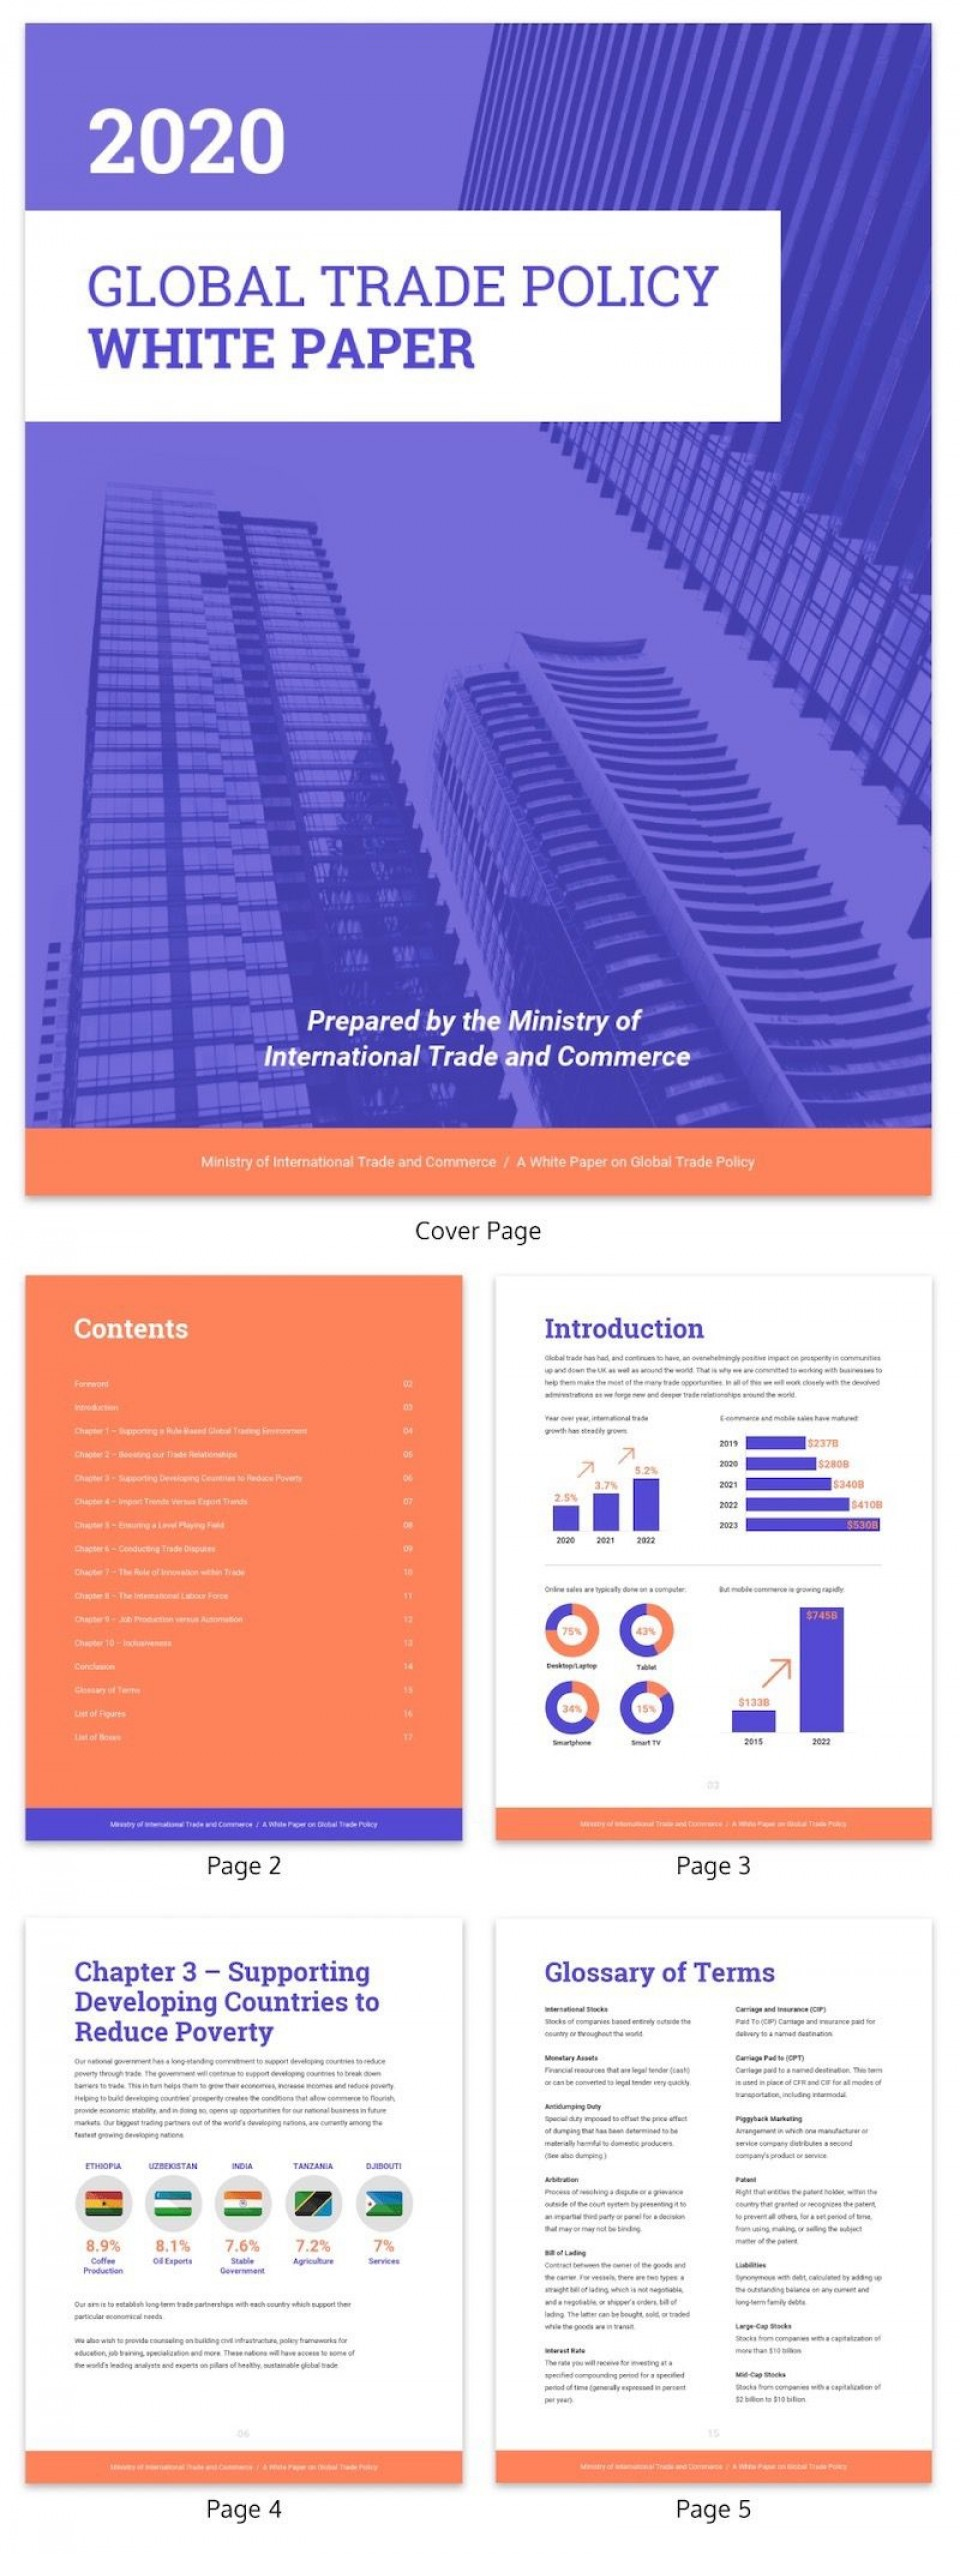 005 Unusual Technical White Paper Template Sample  Example Doc960